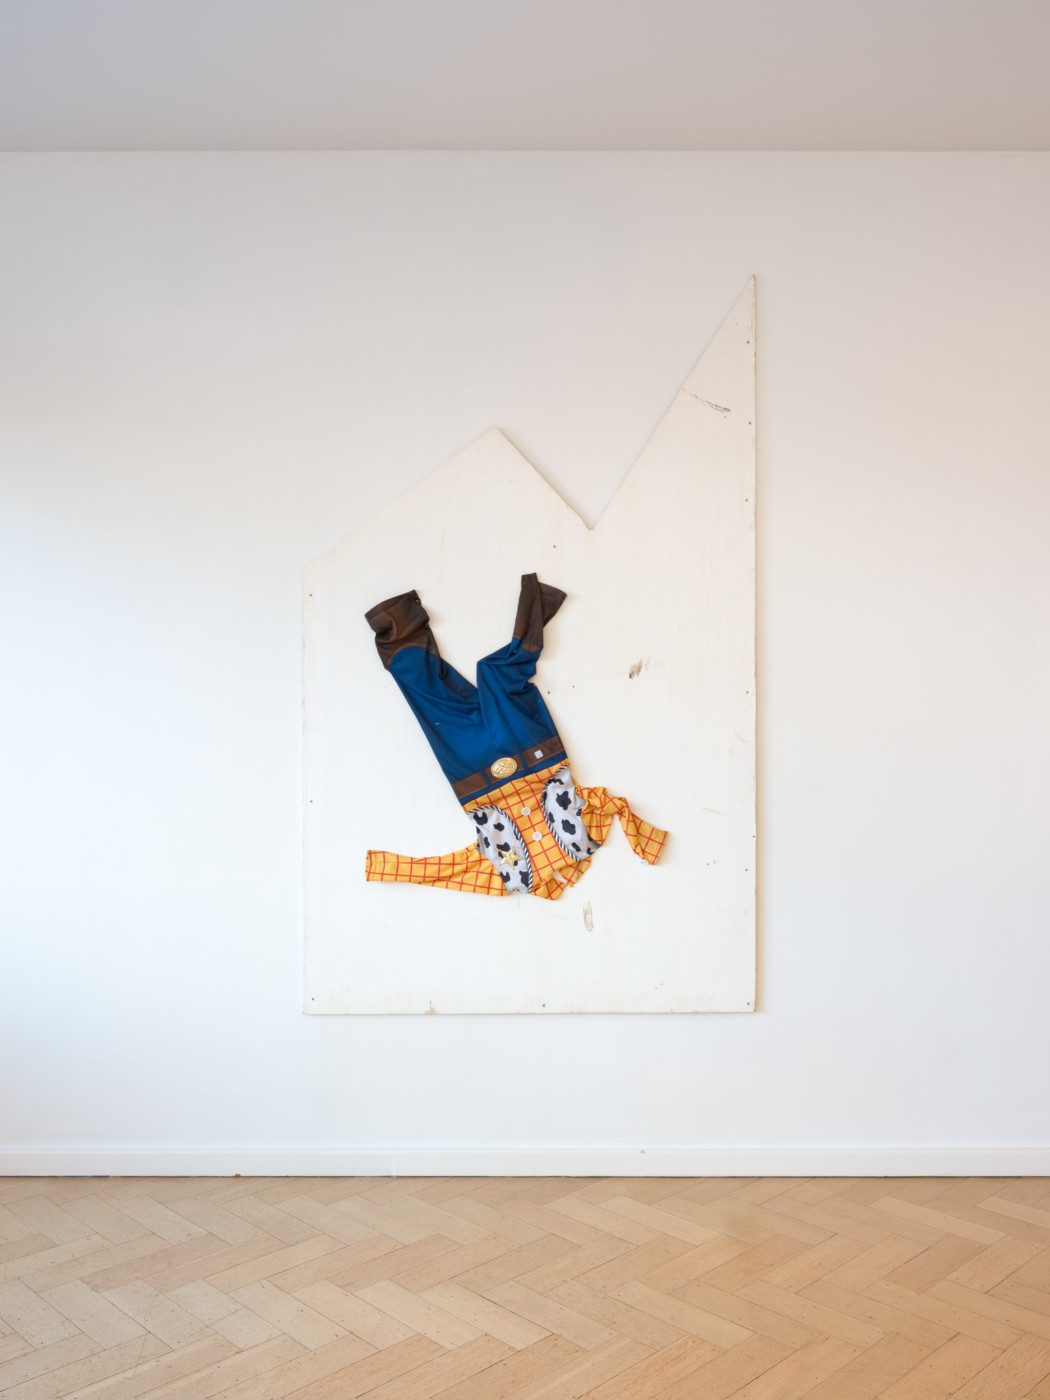 KEITH FARQUHAR  Falling and Laughing,  2021 Found clothes on found wood 196 x 122 x 5 cm / 77 1/8 x 48 1/8 x 2 in - High Art Gallery Paris